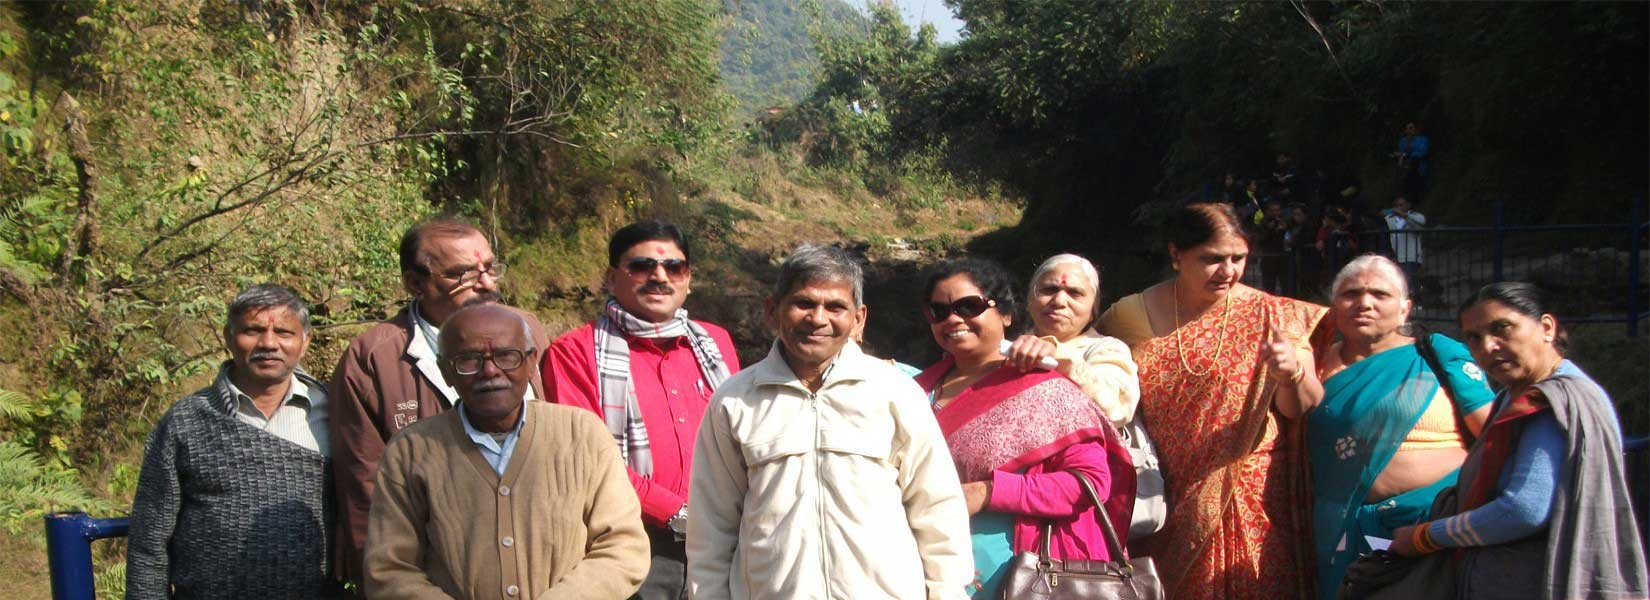 Family-tour-in-nepal